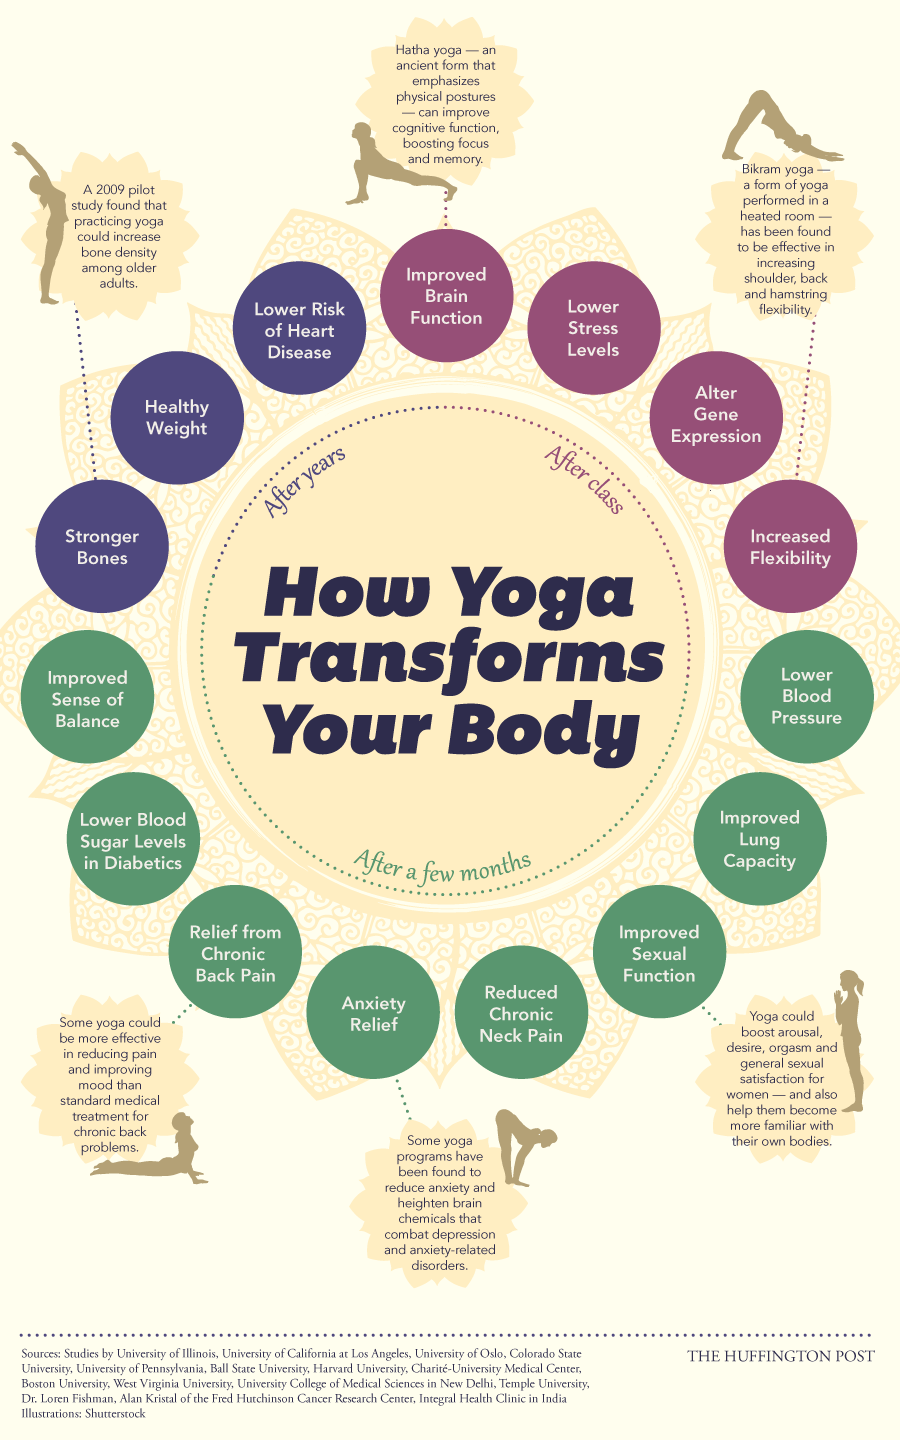 This is your body on yoga. Thanks to ______ for this great infographic.